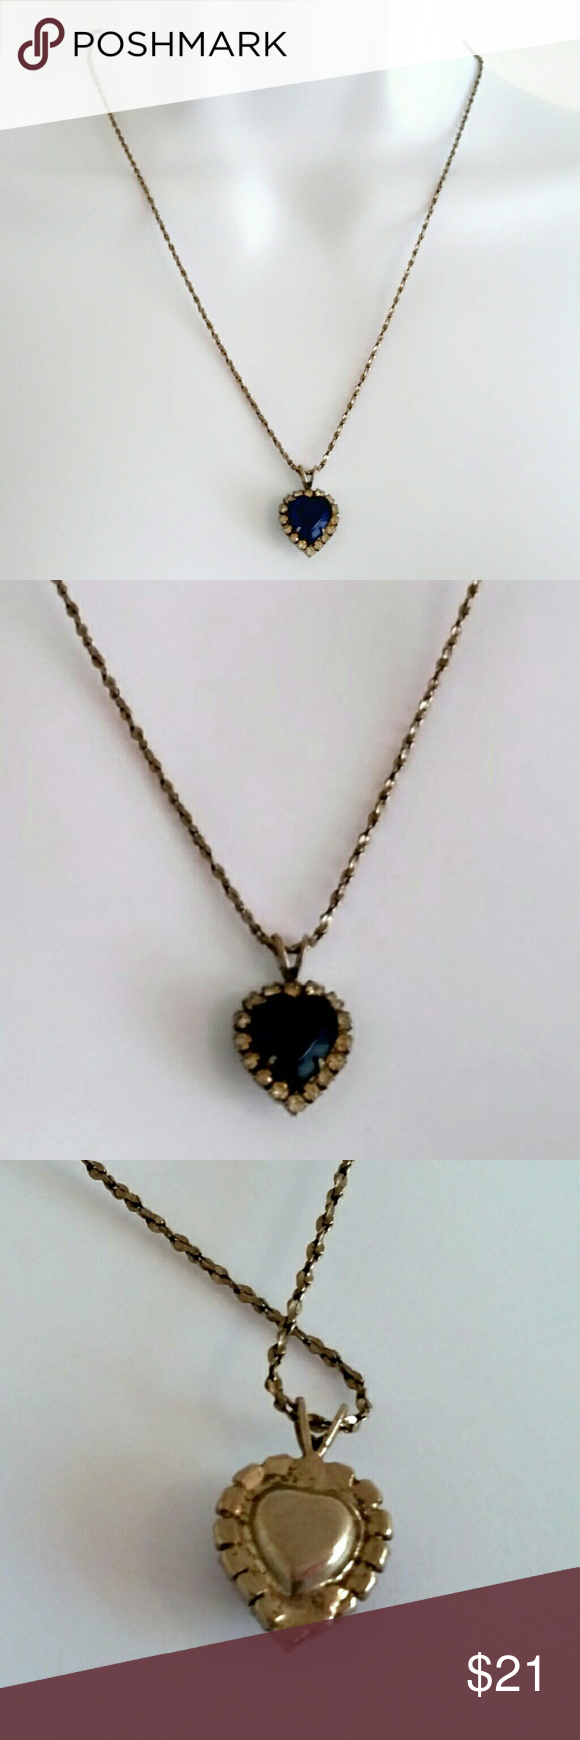 """Vintage 60s Blue Diamond Heart Costume Necklace Beautiful, elegant vintage costume jewelry from the 60s. This necklace features a dainty antique chain with a spring ring closure. Pendant is a deep, bright blue shade in a heart shape, with a halo of white clear stones. Has held up wonderfully and is sturdy and well-made. Perfectly romantic and classic - adds a touch of vintage to any outfit.  Chain length - 18"""" Pendant width - .5""""  Color may vary slightly based on screen display.  #vintage…"""